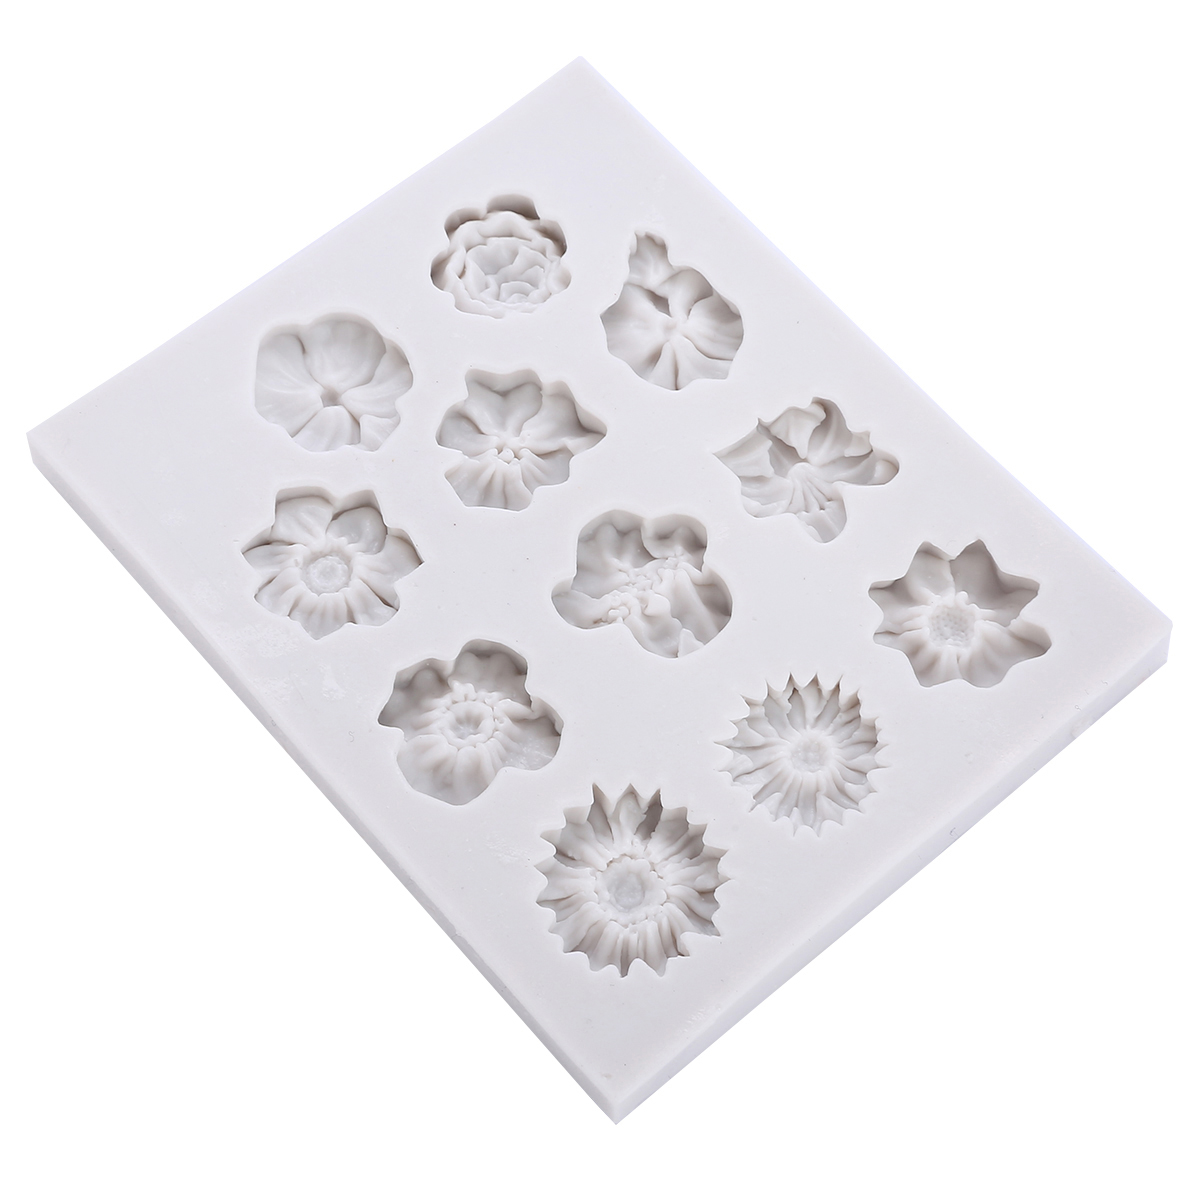 11 Holes Silicone <font><b>Flower</b></font> Fondant Mould DIY <font><b>Flower</b></font> <font><b>Cake</b></font> Mould Chocolate Sugarcraft <font><b>Cake</b></font> Mold Reusable Kitchen Bakeware <font><b>Tool</b></font> <font><b>Decor</b></font> image